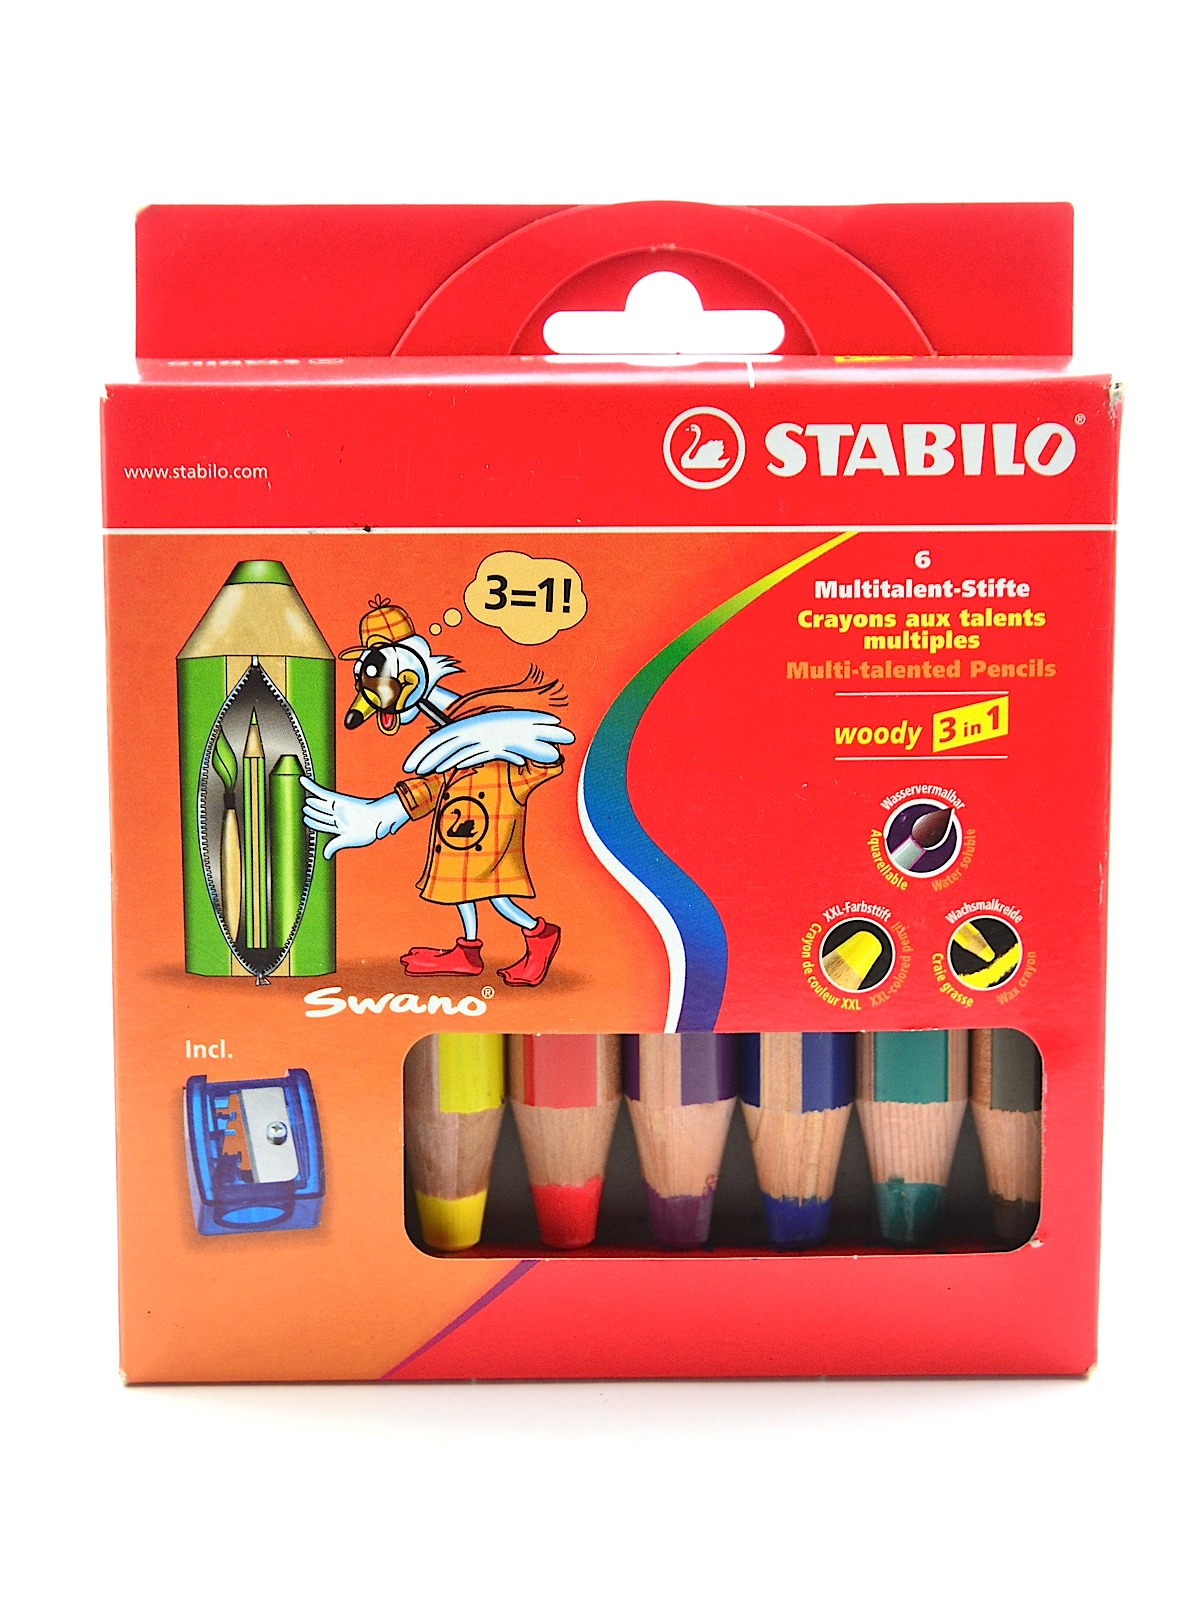 Woody 3 in 1 Pencil set of 6 with Sharpener